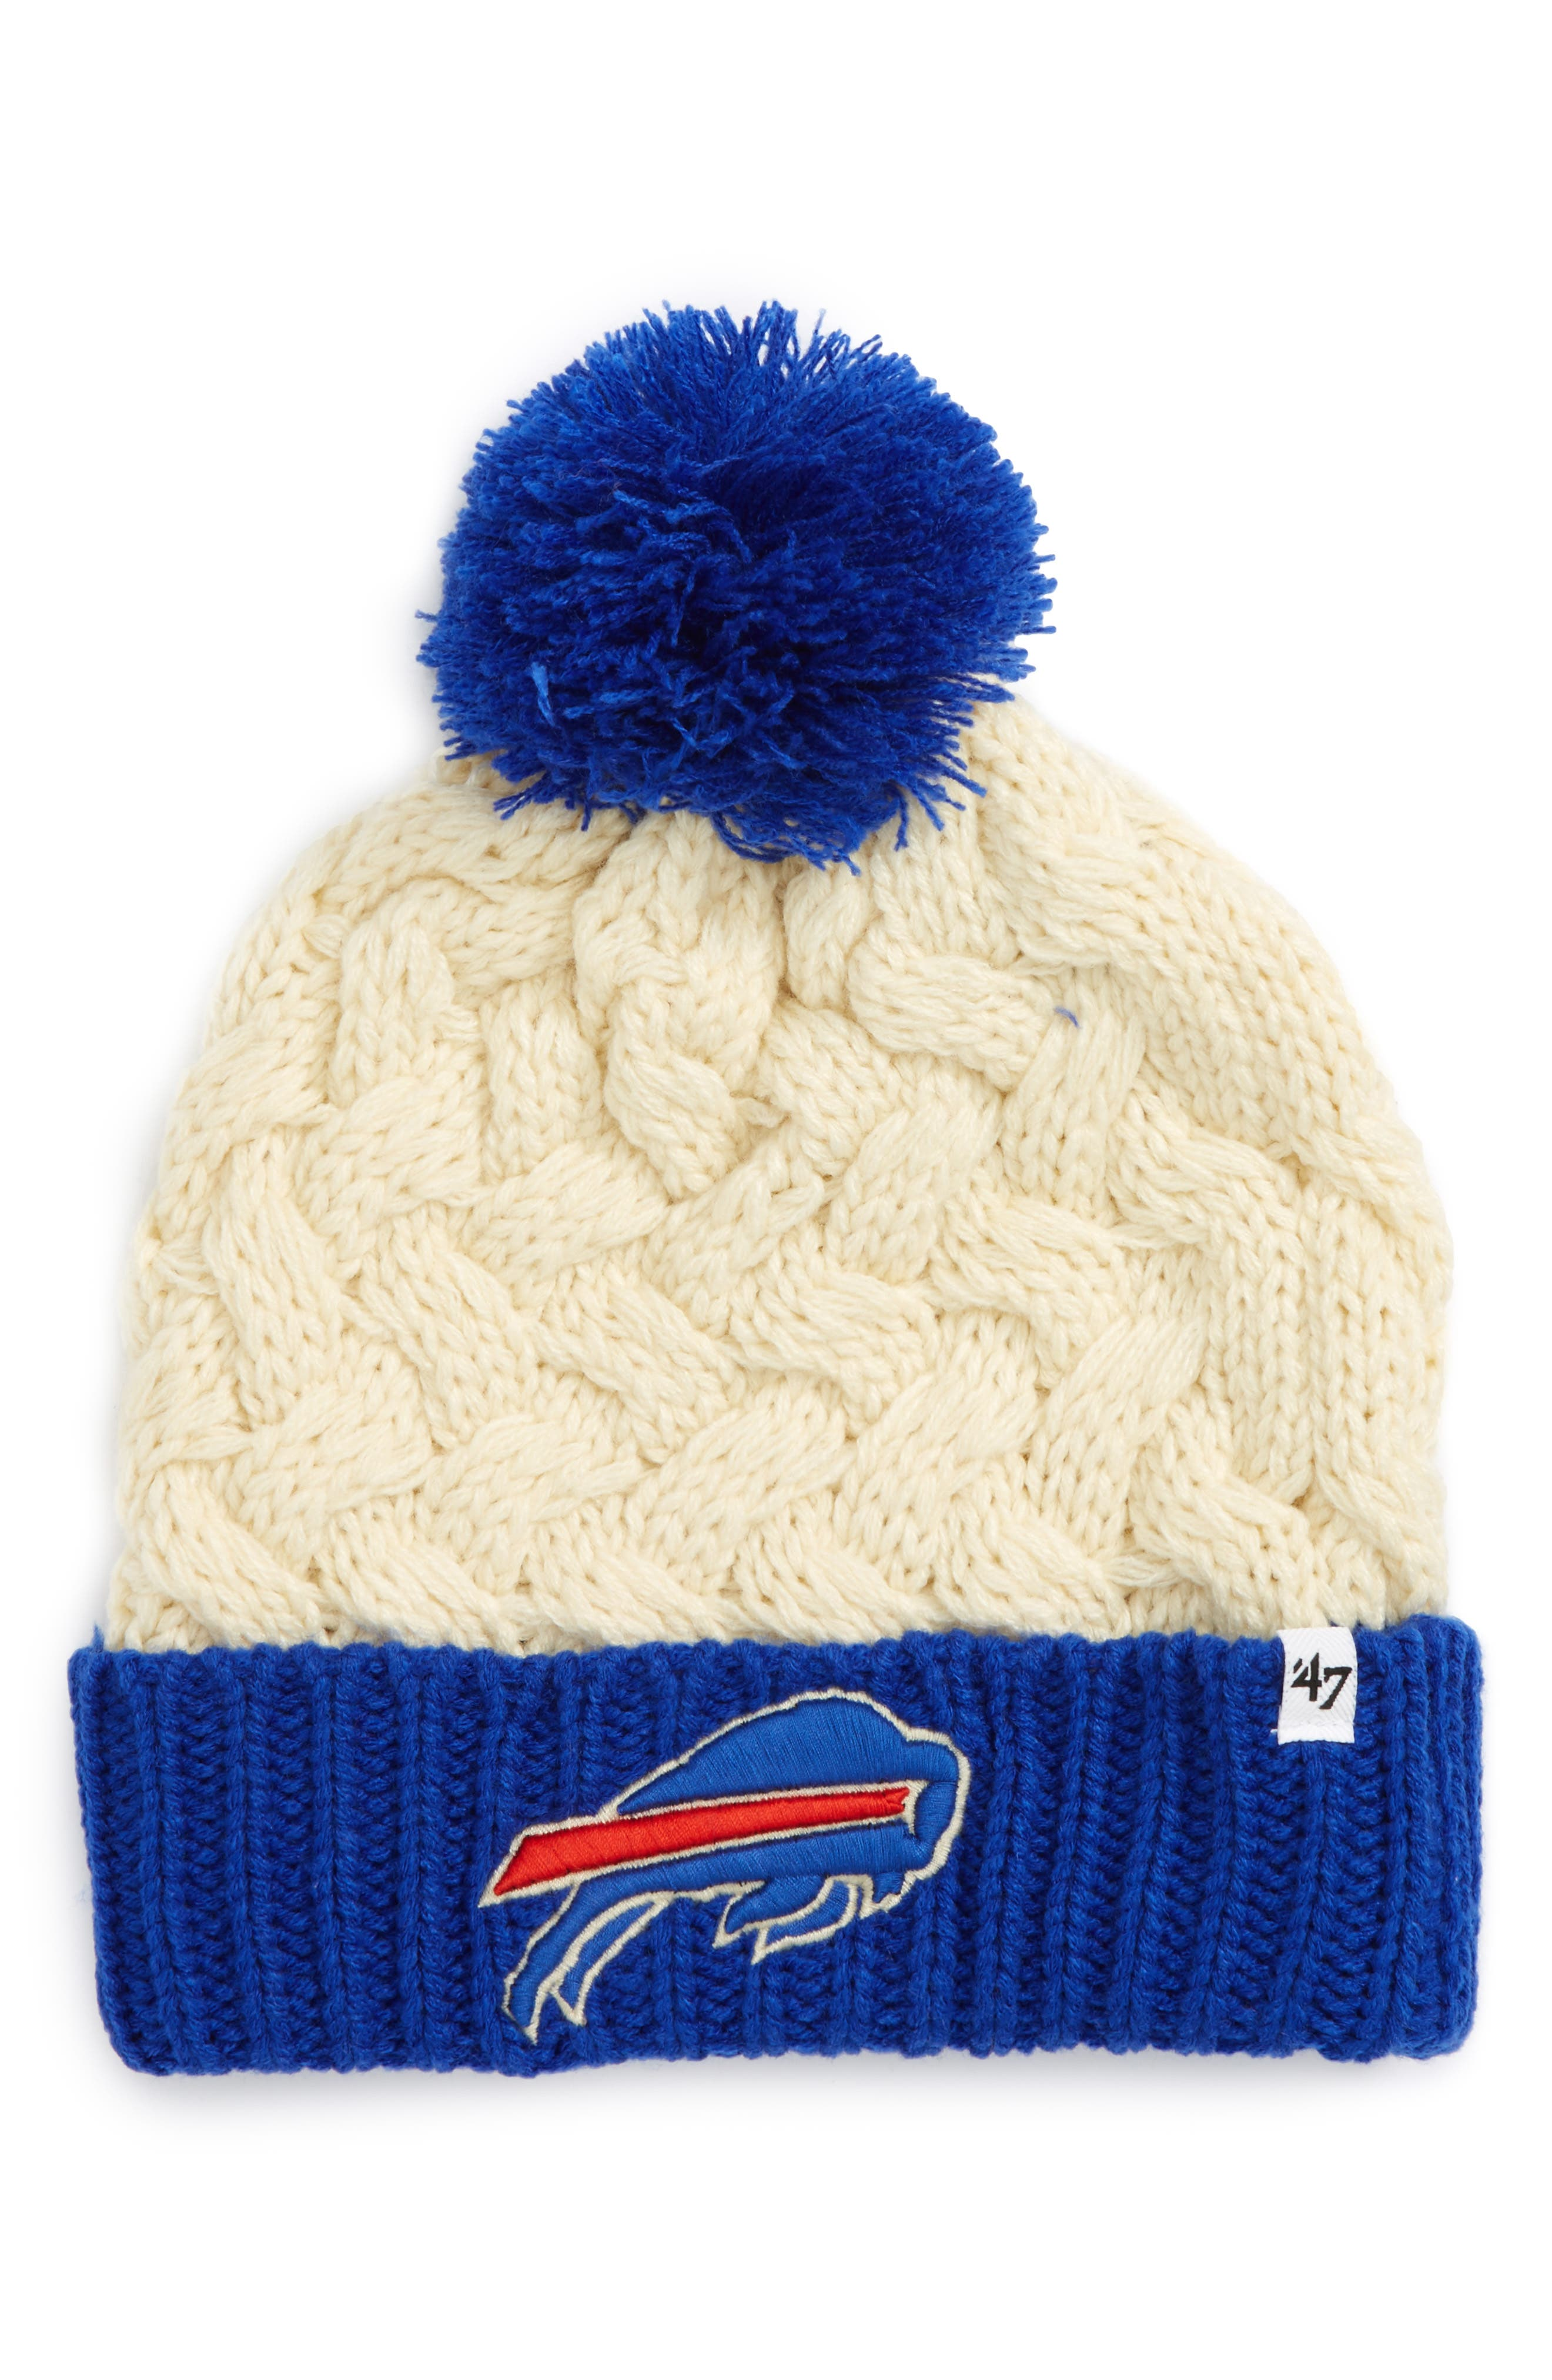 Main Image - '47 Matterhorn Buffalo Bills Beanie